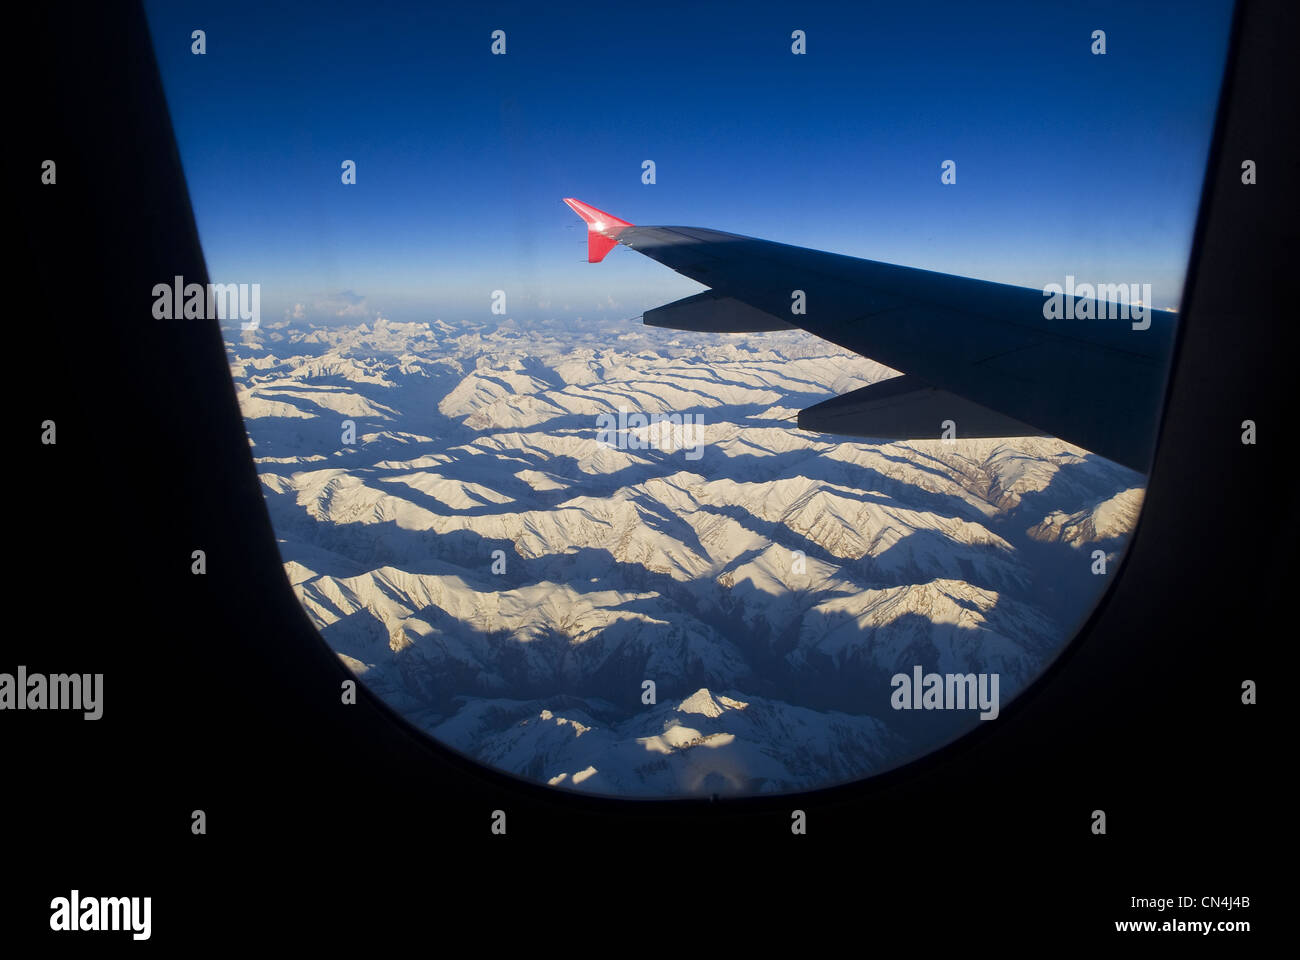 India, Jammu and Kashmir State, Ladakh Region, Himalayan foothills, view from plane before landing at Leh Airport - Stock Image